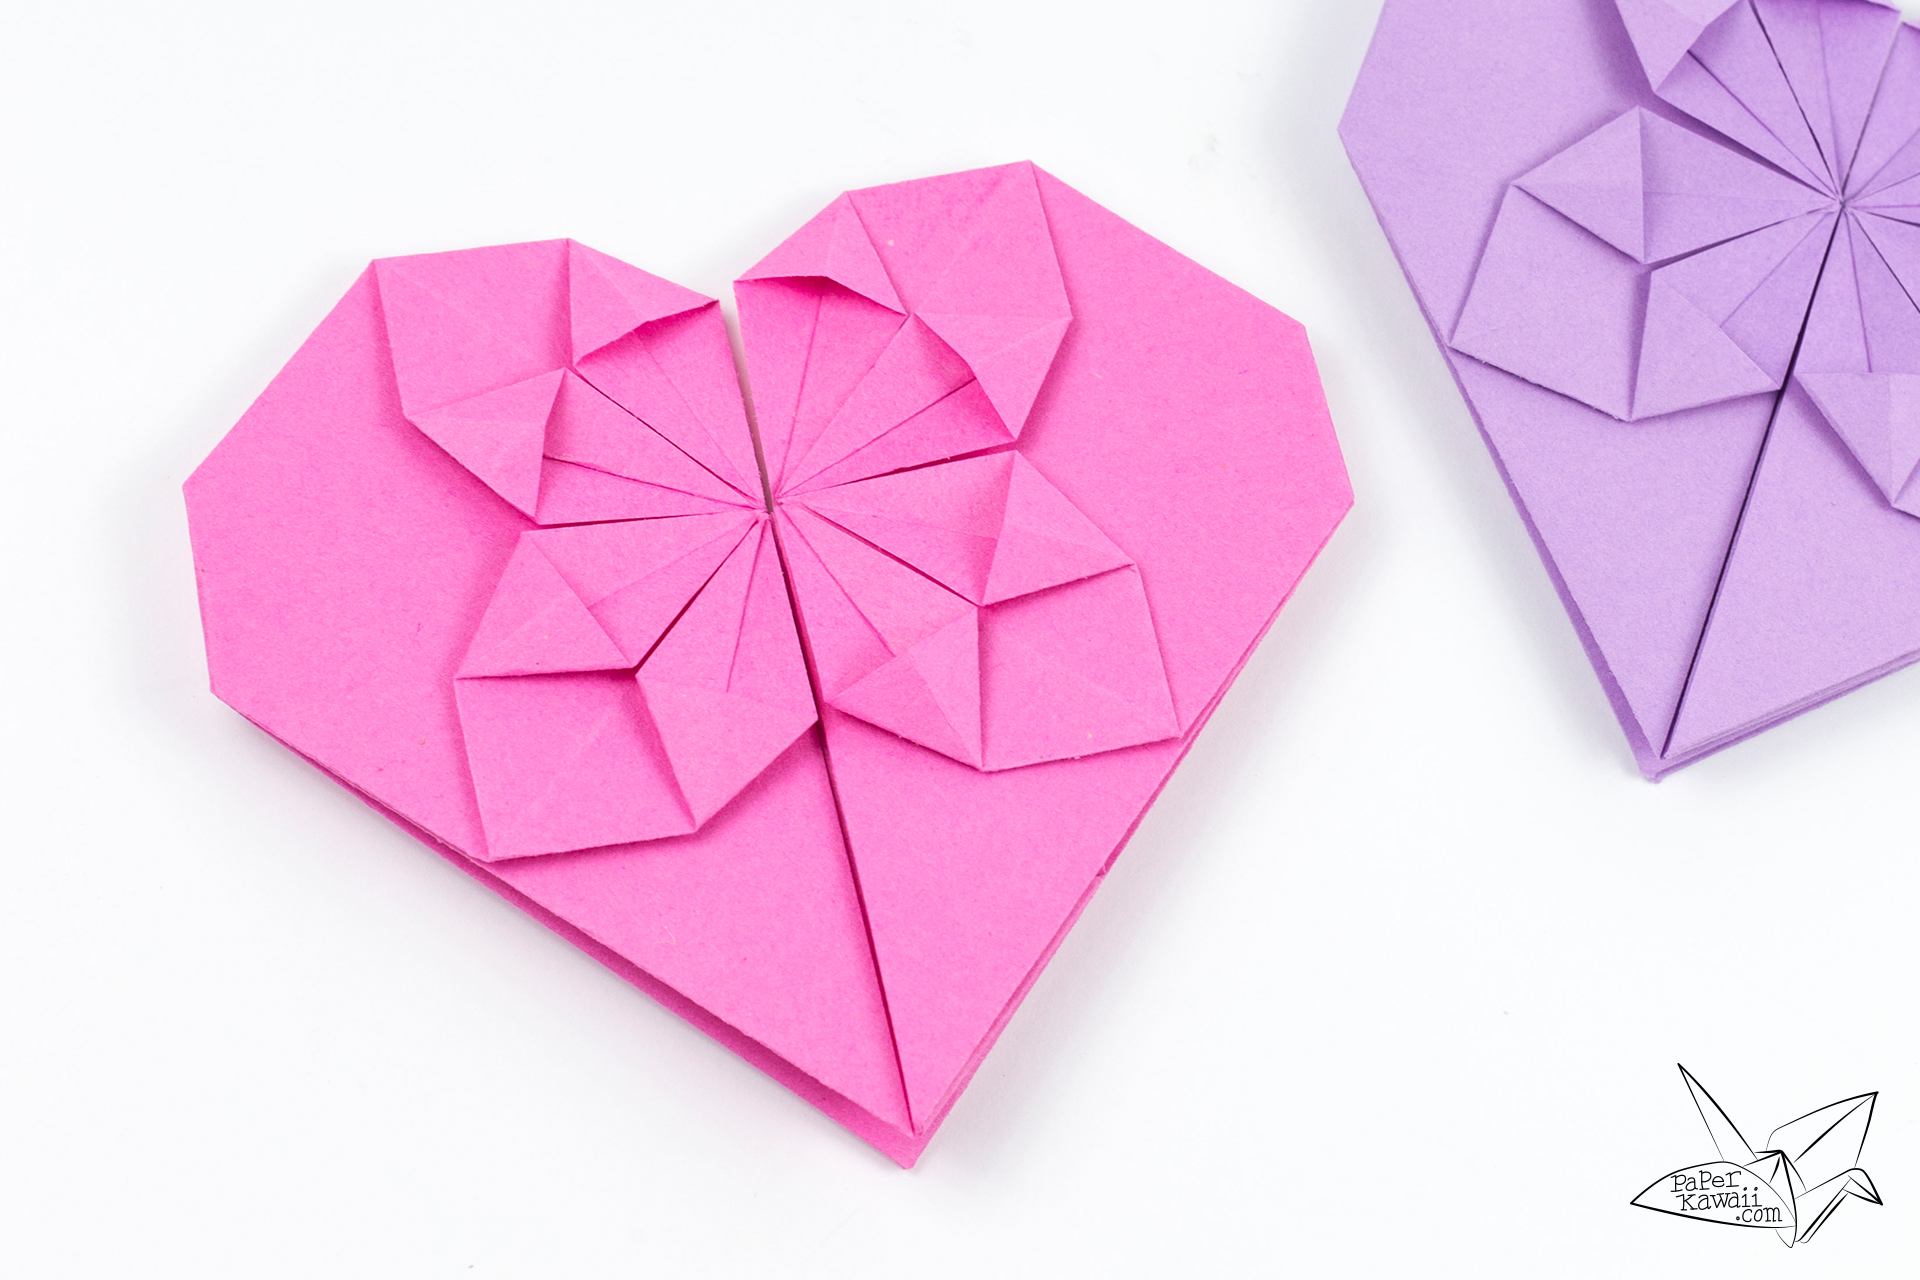 Money Origami Heart Tutorial for Valentine's Day - Paper ... - photo#6